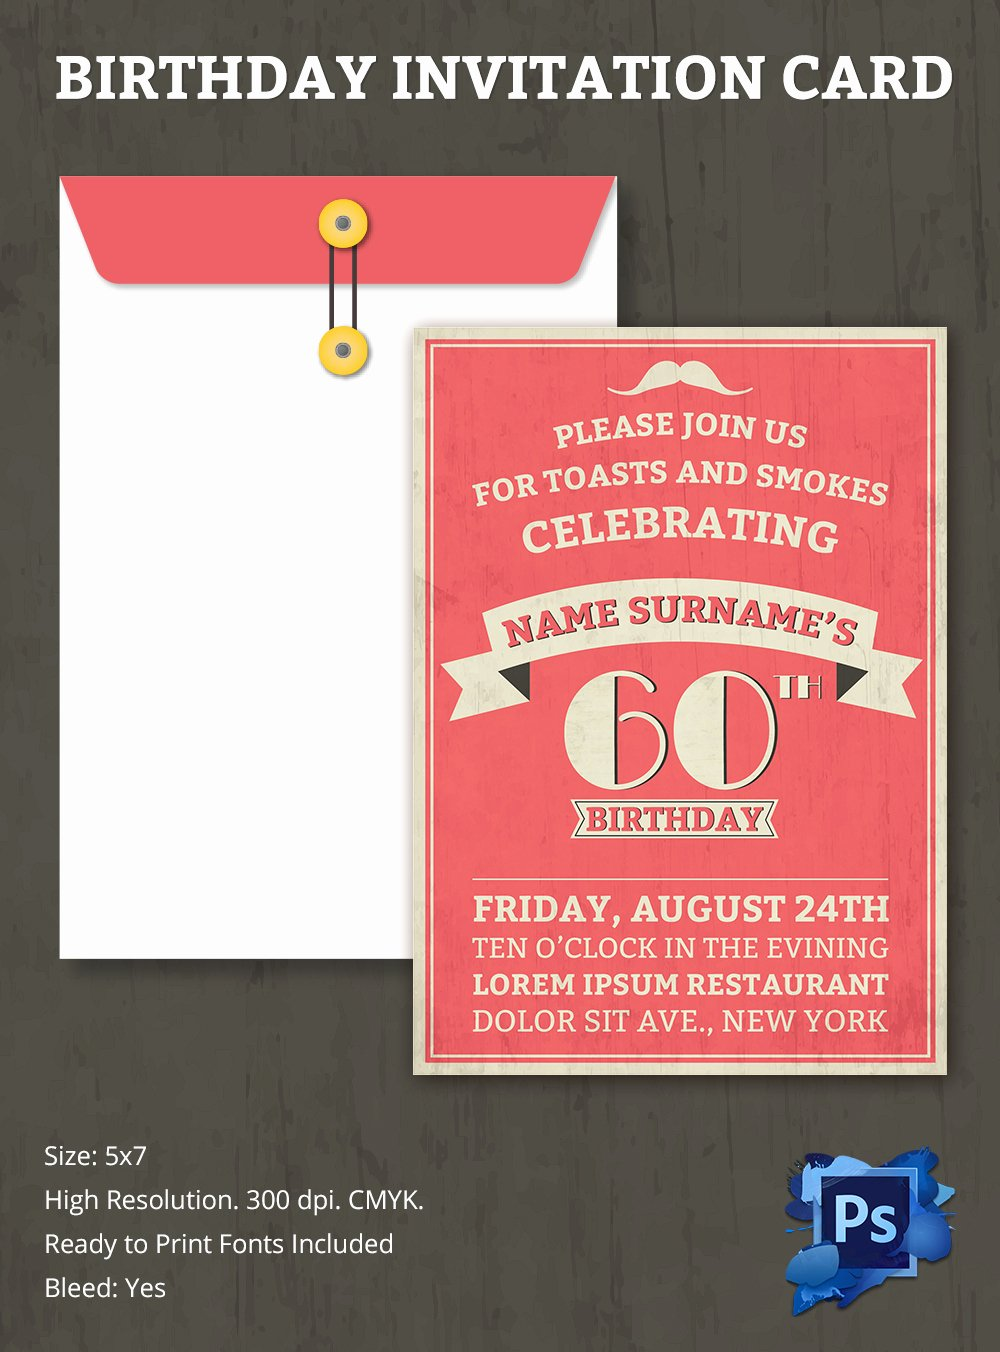 Birthday Invitation Template Word Awesome Birthday Invitation Templates Word Free